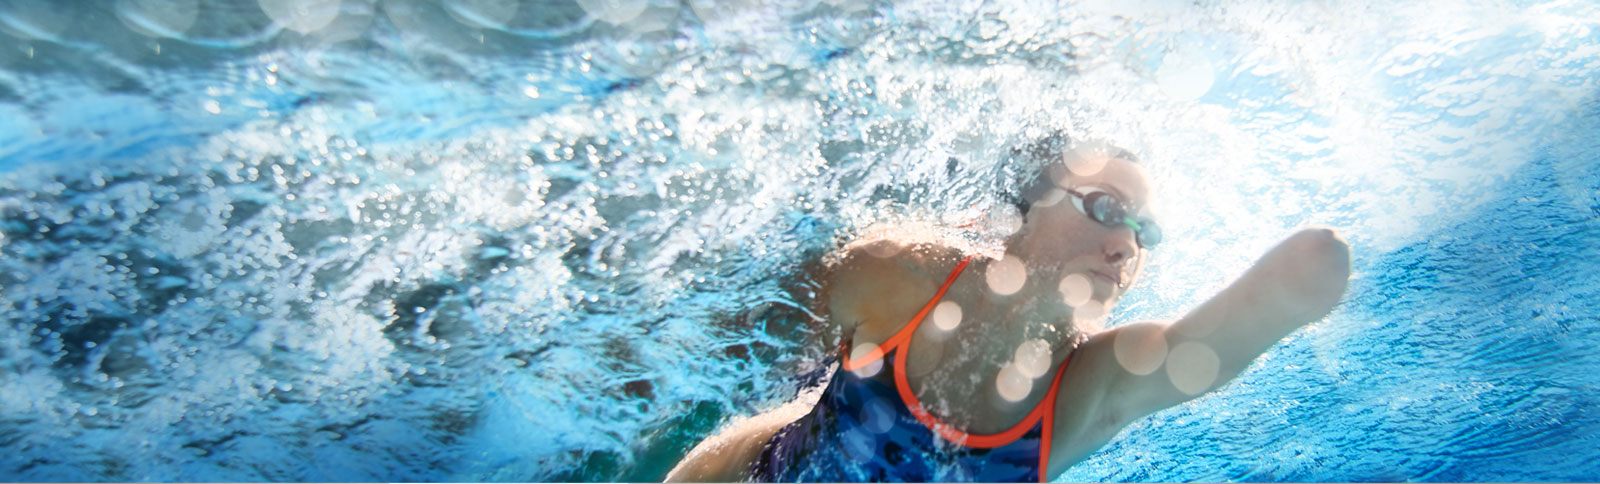 Woman with an amputated left arm below the elbow swimming laps while wearing goggles, a swim cap and a blue bathing suit with orange piping